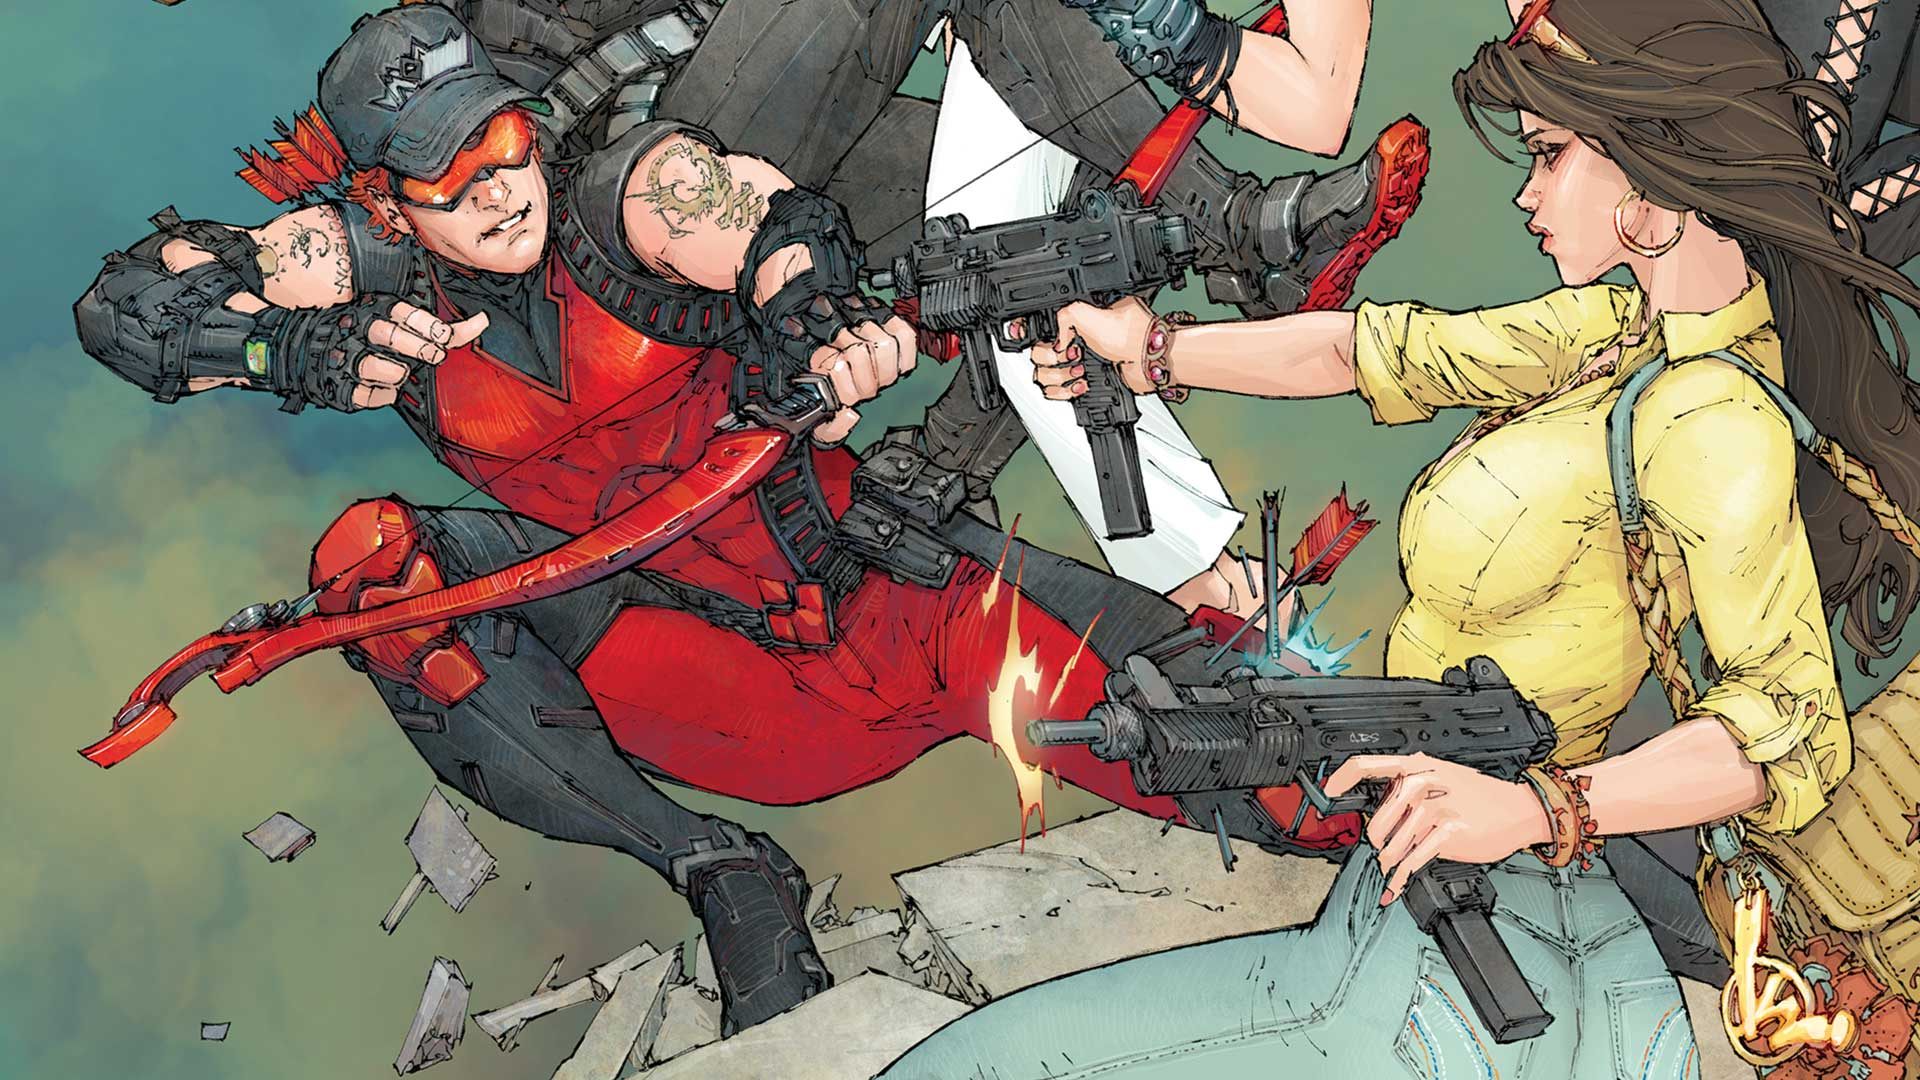 Red Hood and the Outlaws Annual #2 (2018) review: A bromantic yet heartfelt New 52 reunion